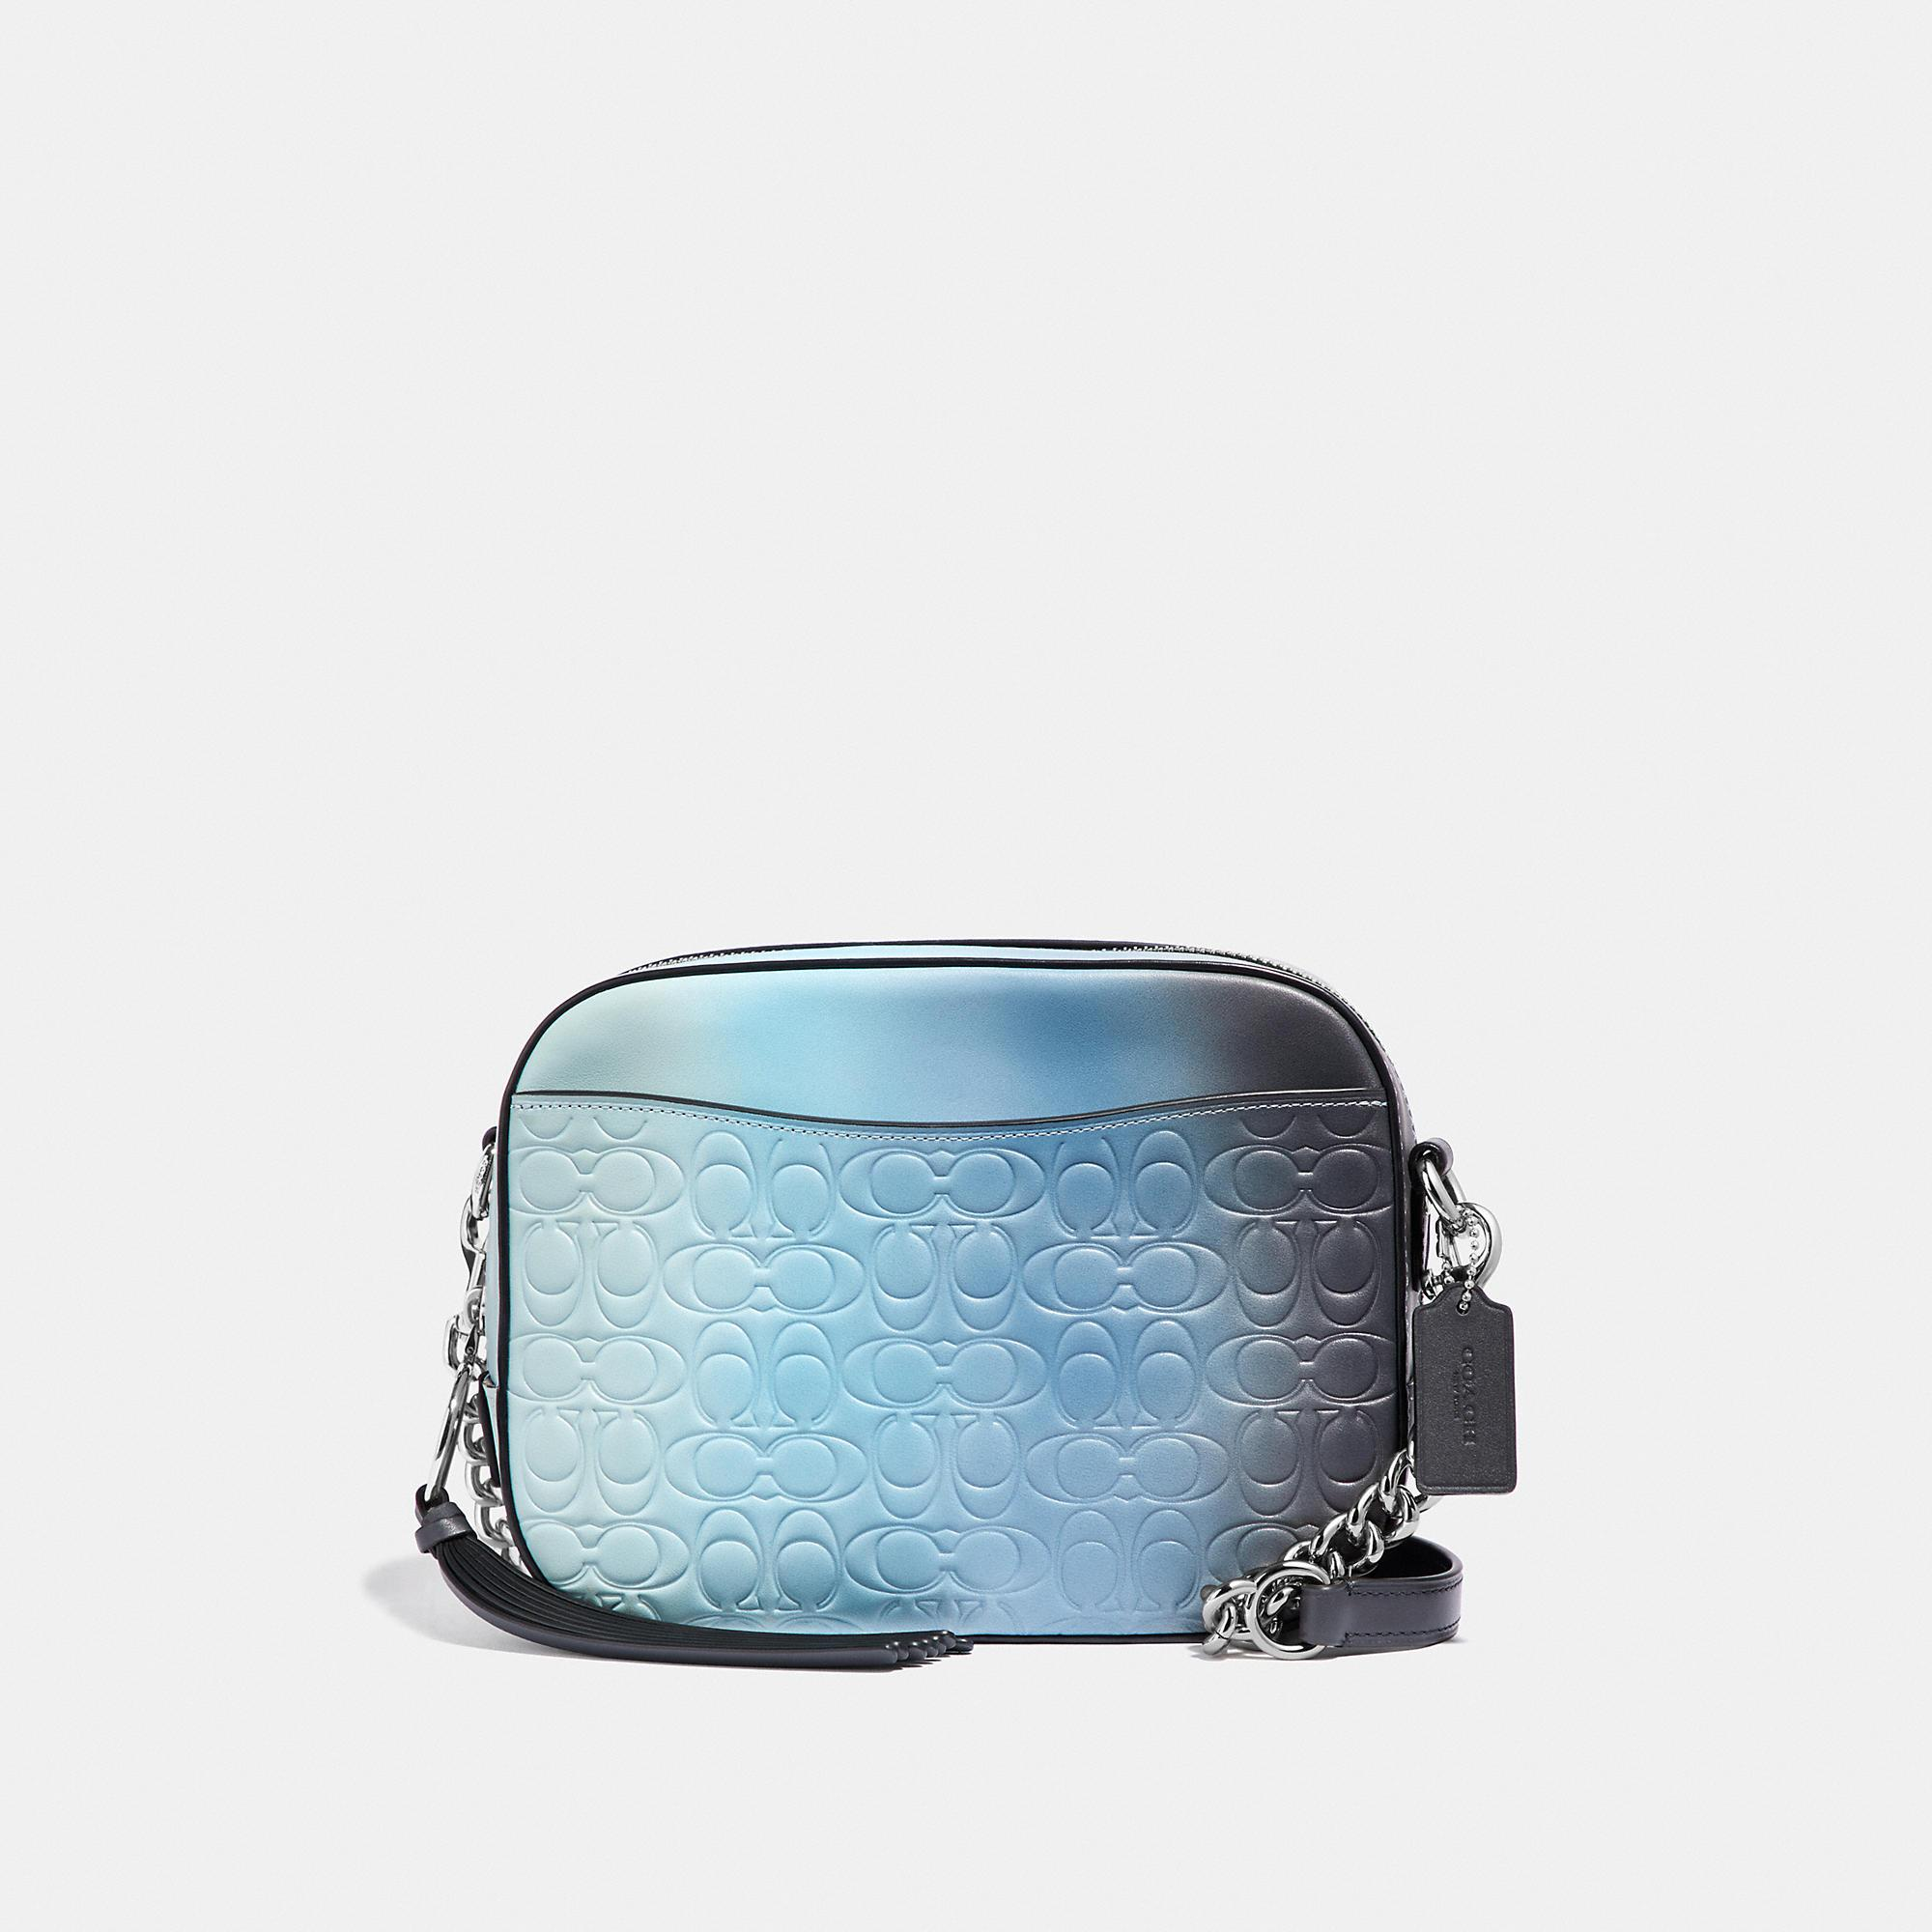 676005c5d Lyst - COACH Camera Bag In Ombre Signature Leather in Blue